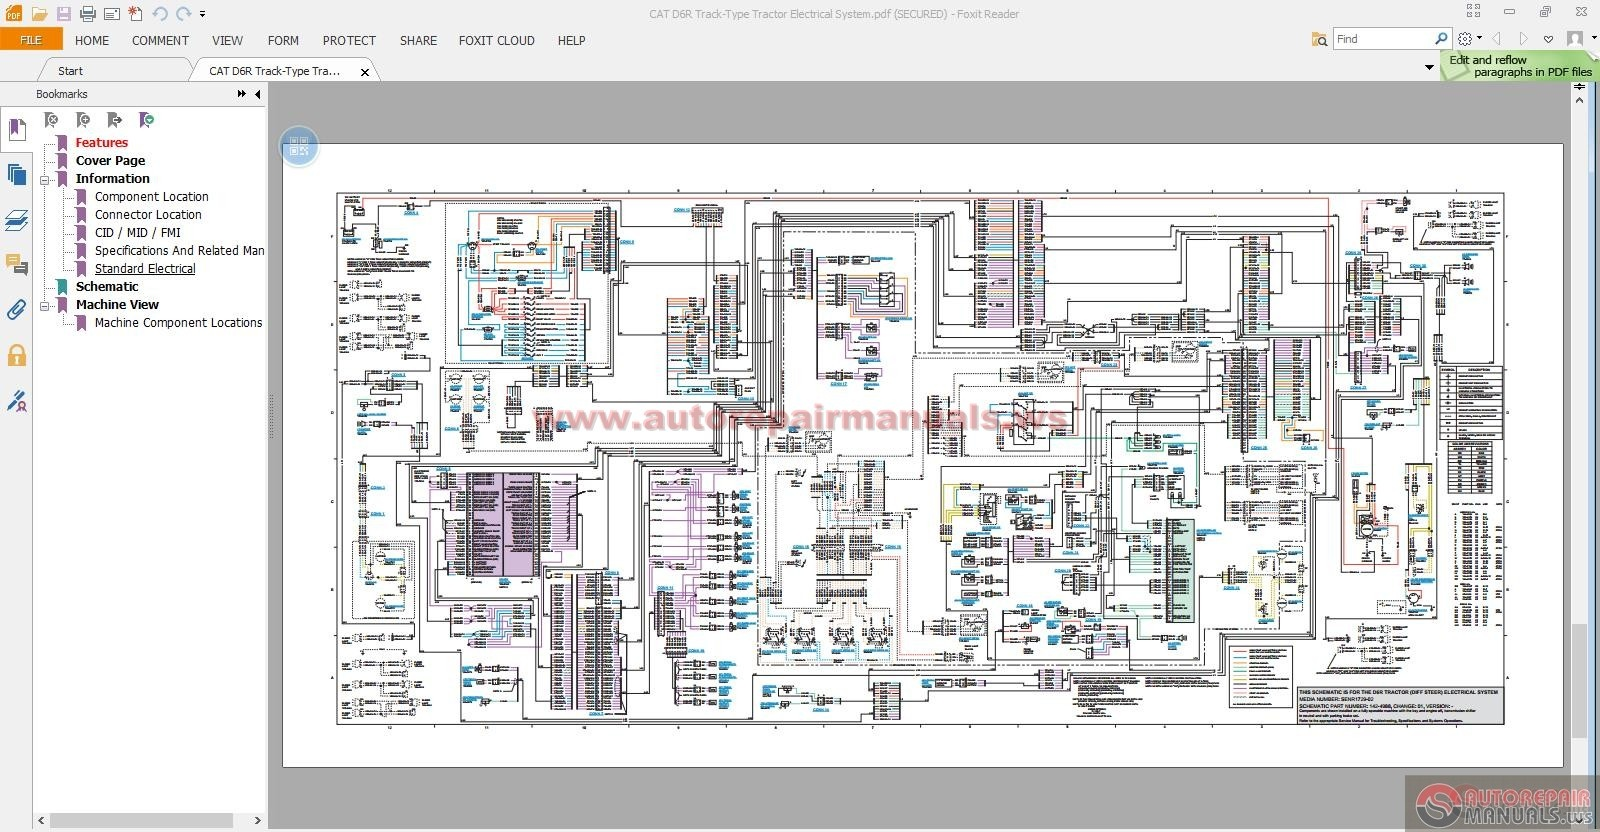 cat d6 wiring diagram cat wiring diagrams online description cat d6r tracktype tractor electrical system auto repair manual